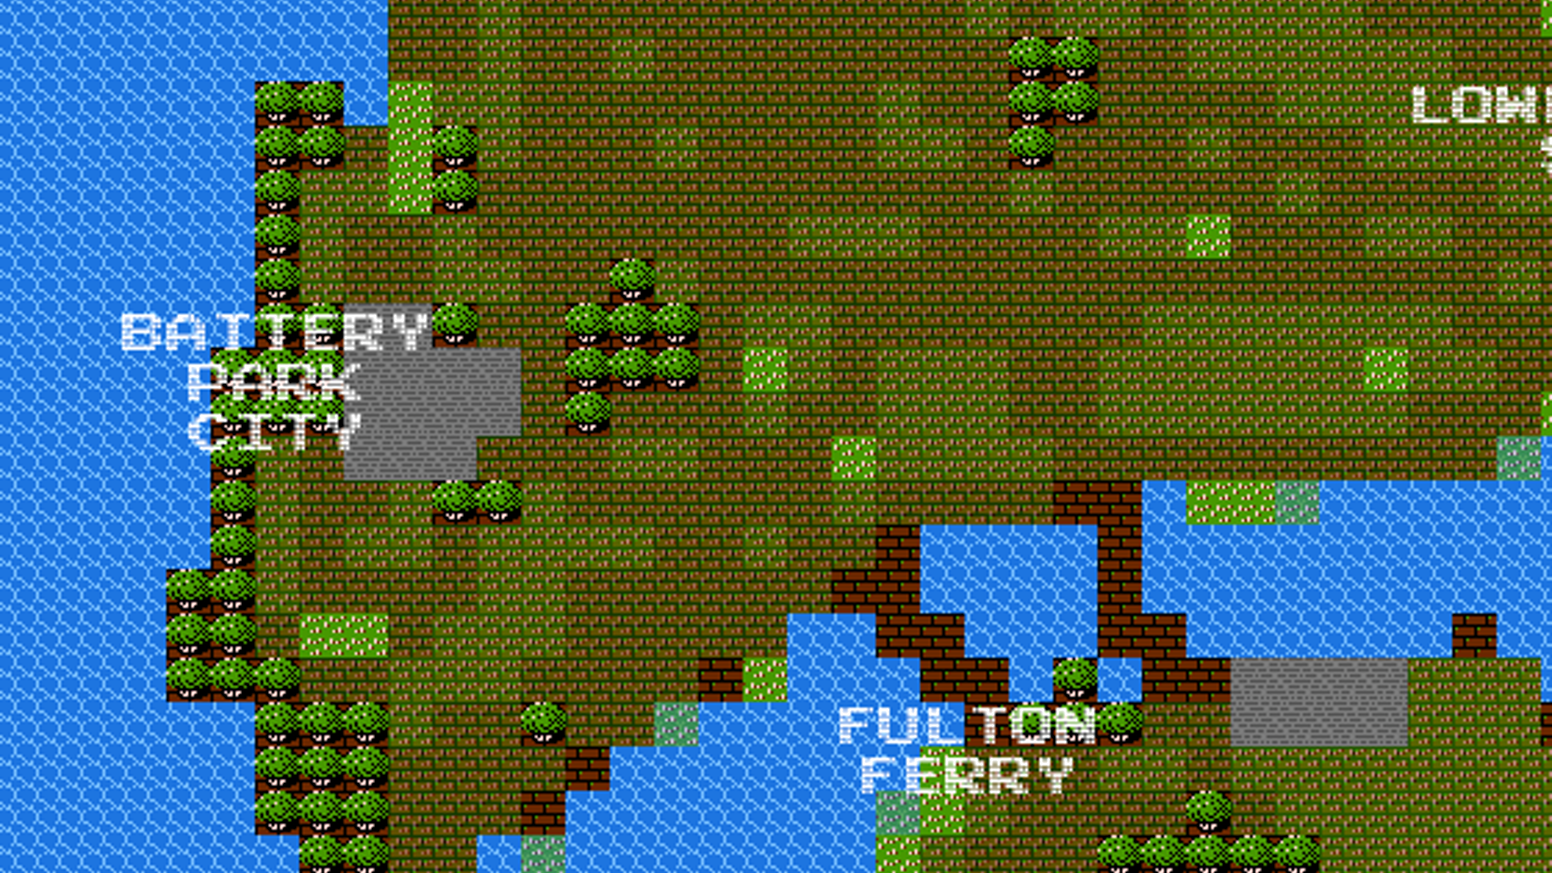 8-Bit Cities: real-world maps that look like 80s video games ... on mmo maps, epic d d maps, metro bus houston tx maps, cool site maps, interesting maps, snes maps, dragon warrior monsters 2 maps, google maps, dvd maps, all the locations of the death camp maps, prank maps, fictional maps, jrpg maps, all of westeros maps, bully scholarship edition cheats maps, made up maps, cartography maps, simple risk maps, fishing maps, house maps,